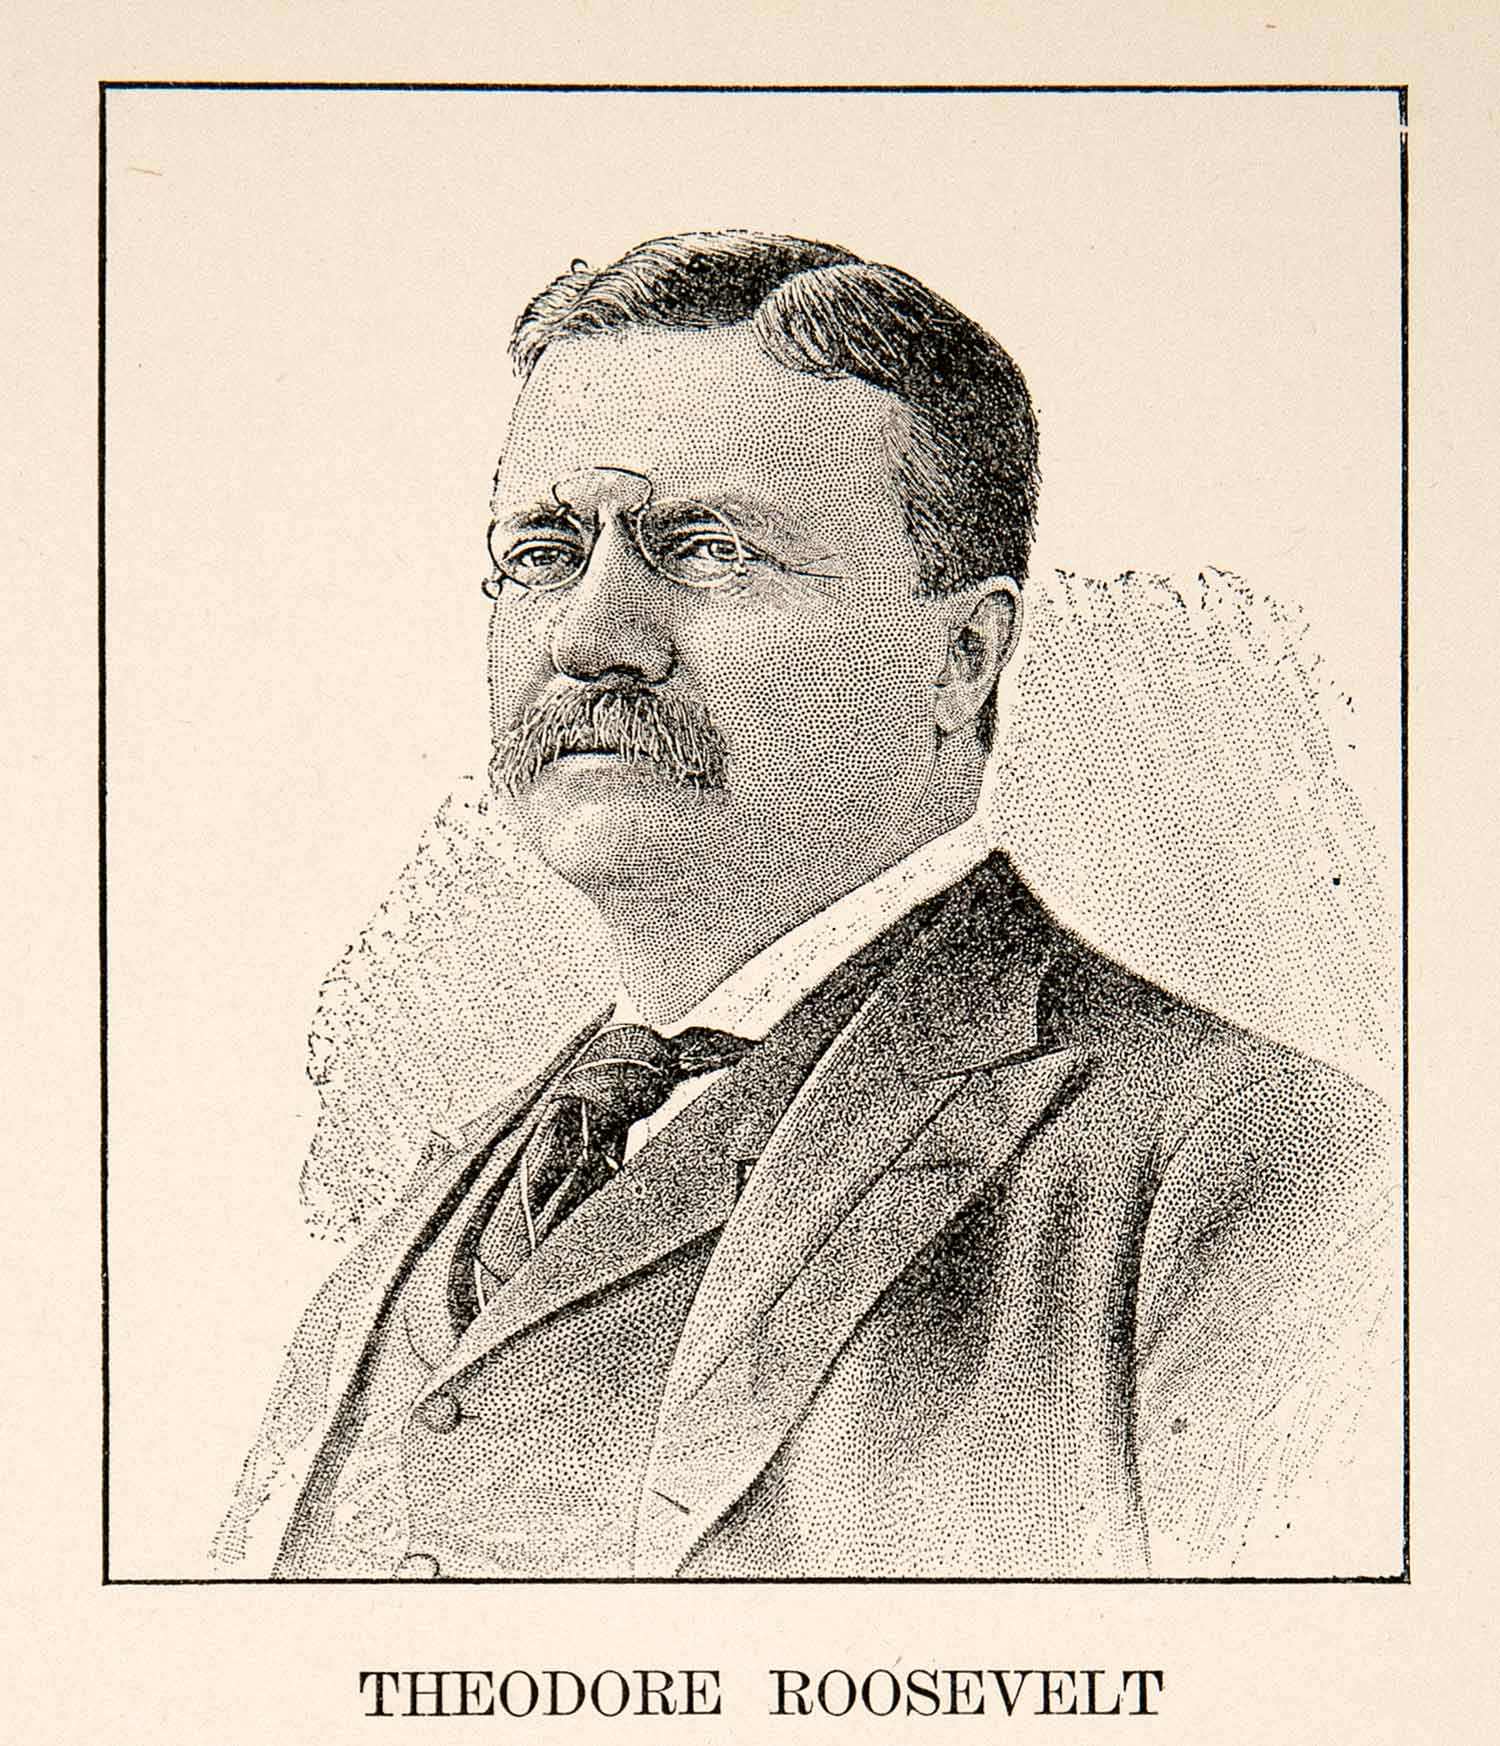 a biography of theodore roosevelt the twenty sixth president of the united states of america Theodore roosevelt - books on united states presidents did america's twenty-sixth president learn how to master the theodore roosevelt: an intimate biography.